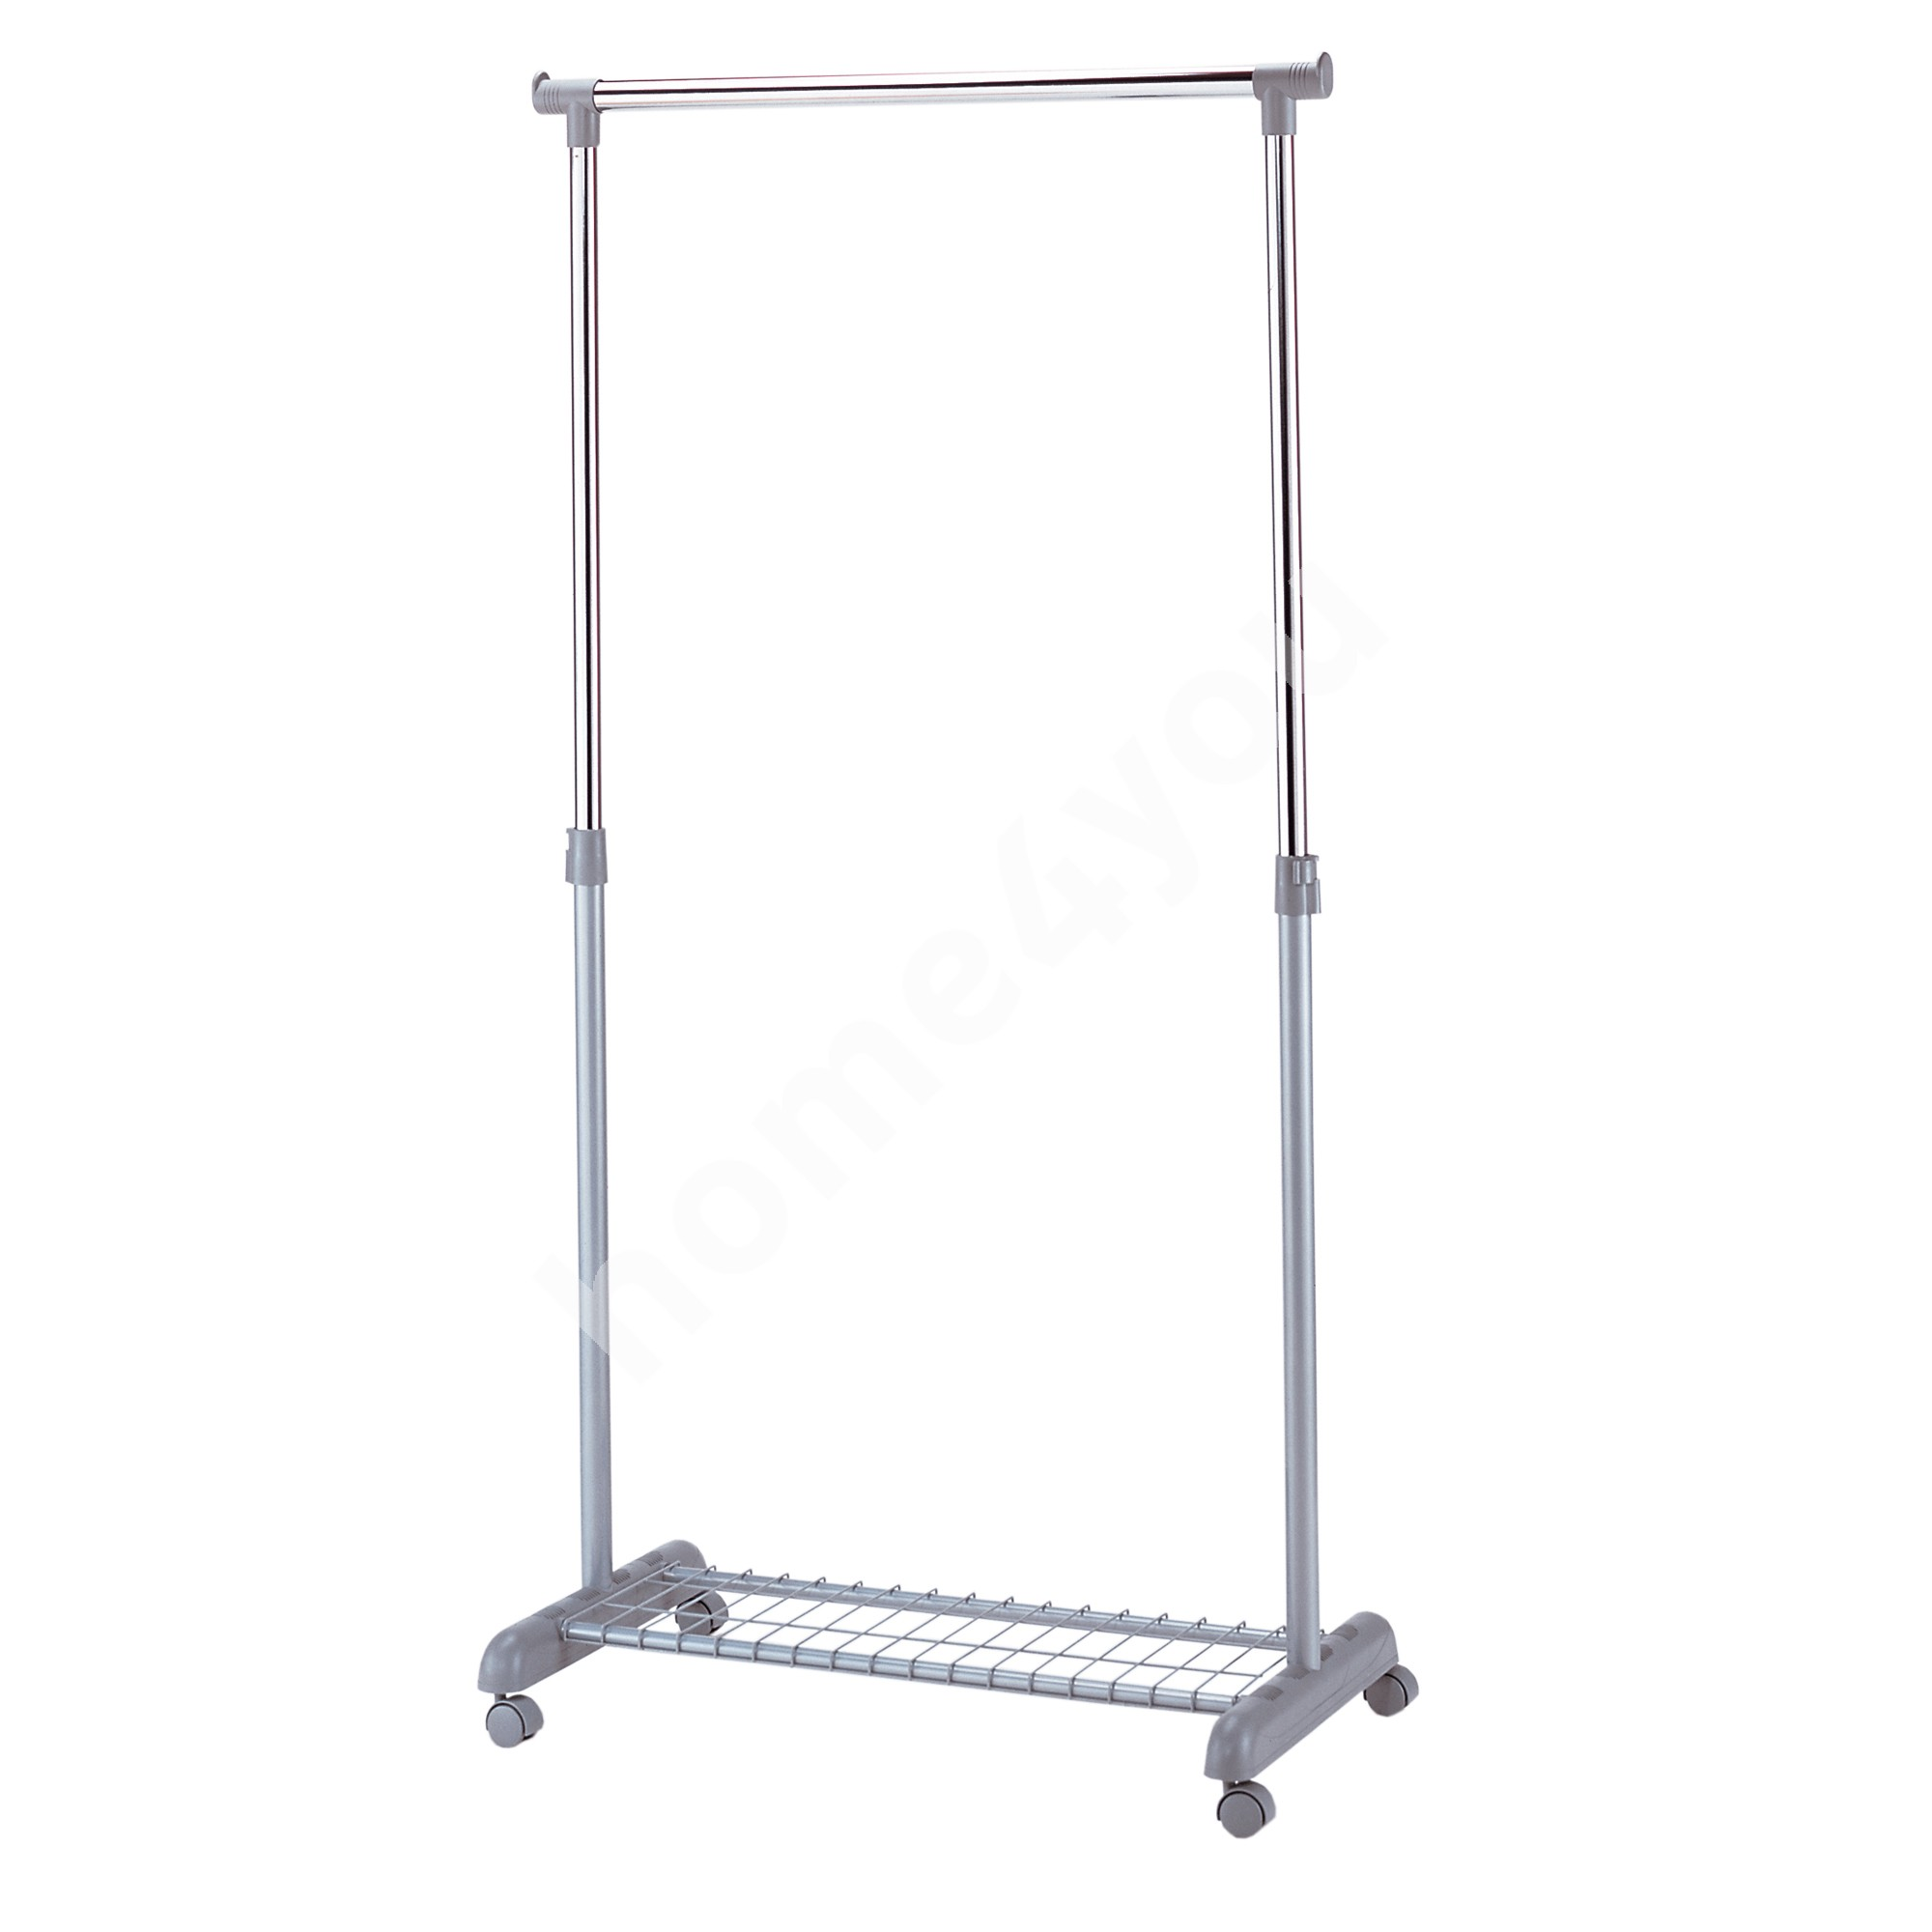 Clothes hanger FRANK with shoe rack on wheels 83x43x93,5-168cm, color: silver-chrome